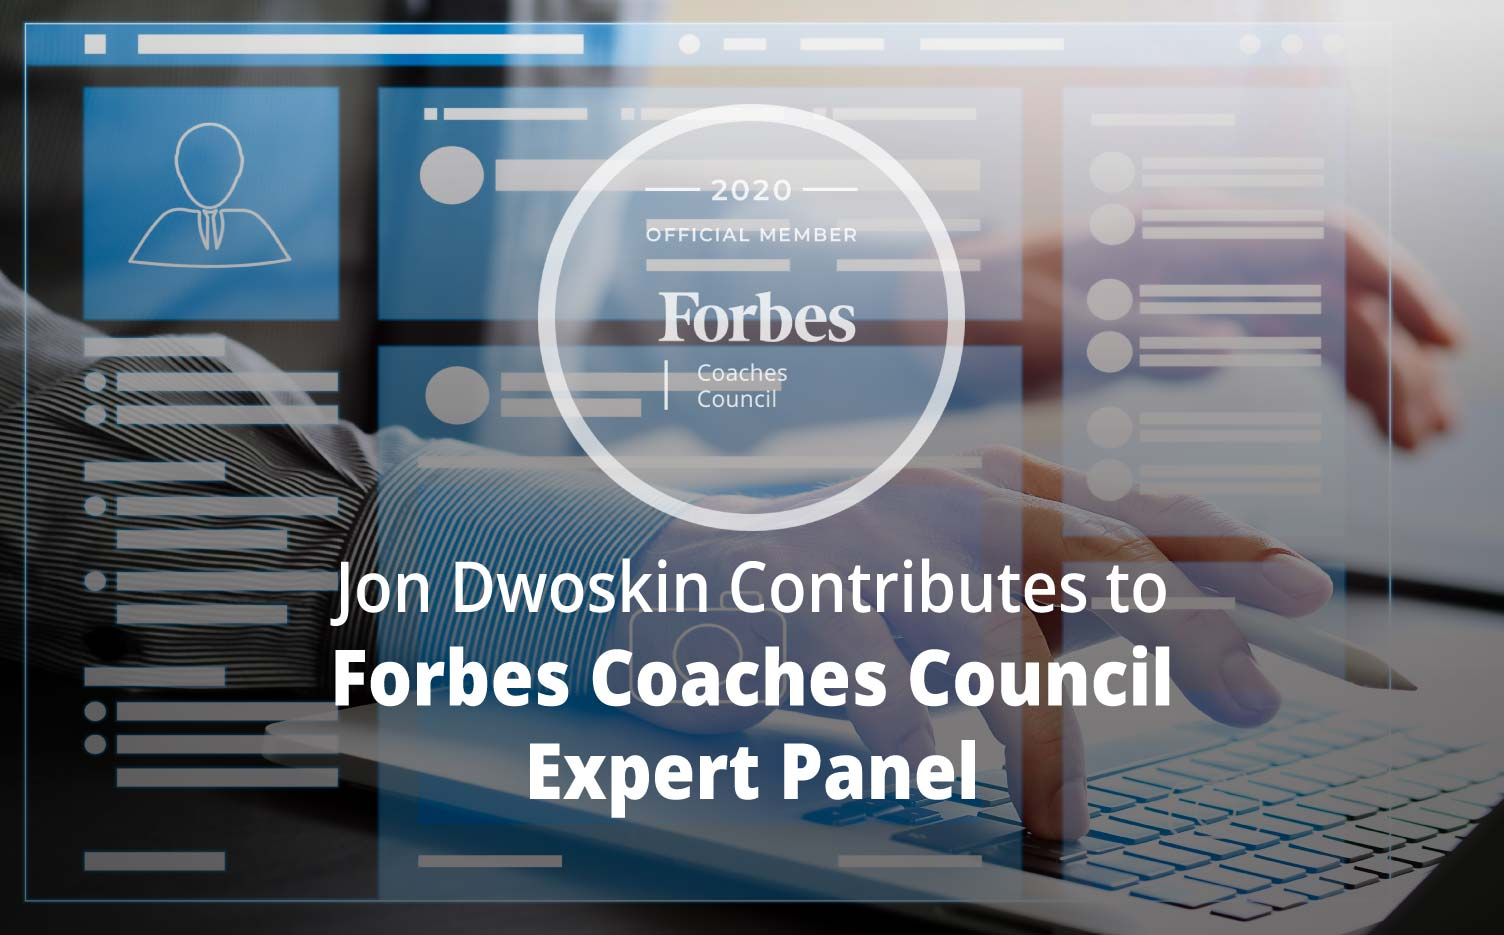 Jon Contributes to Forbes Coaches Council Expert Panel: 11 Emerging LinkedIn Trends And How To Prepare For Them